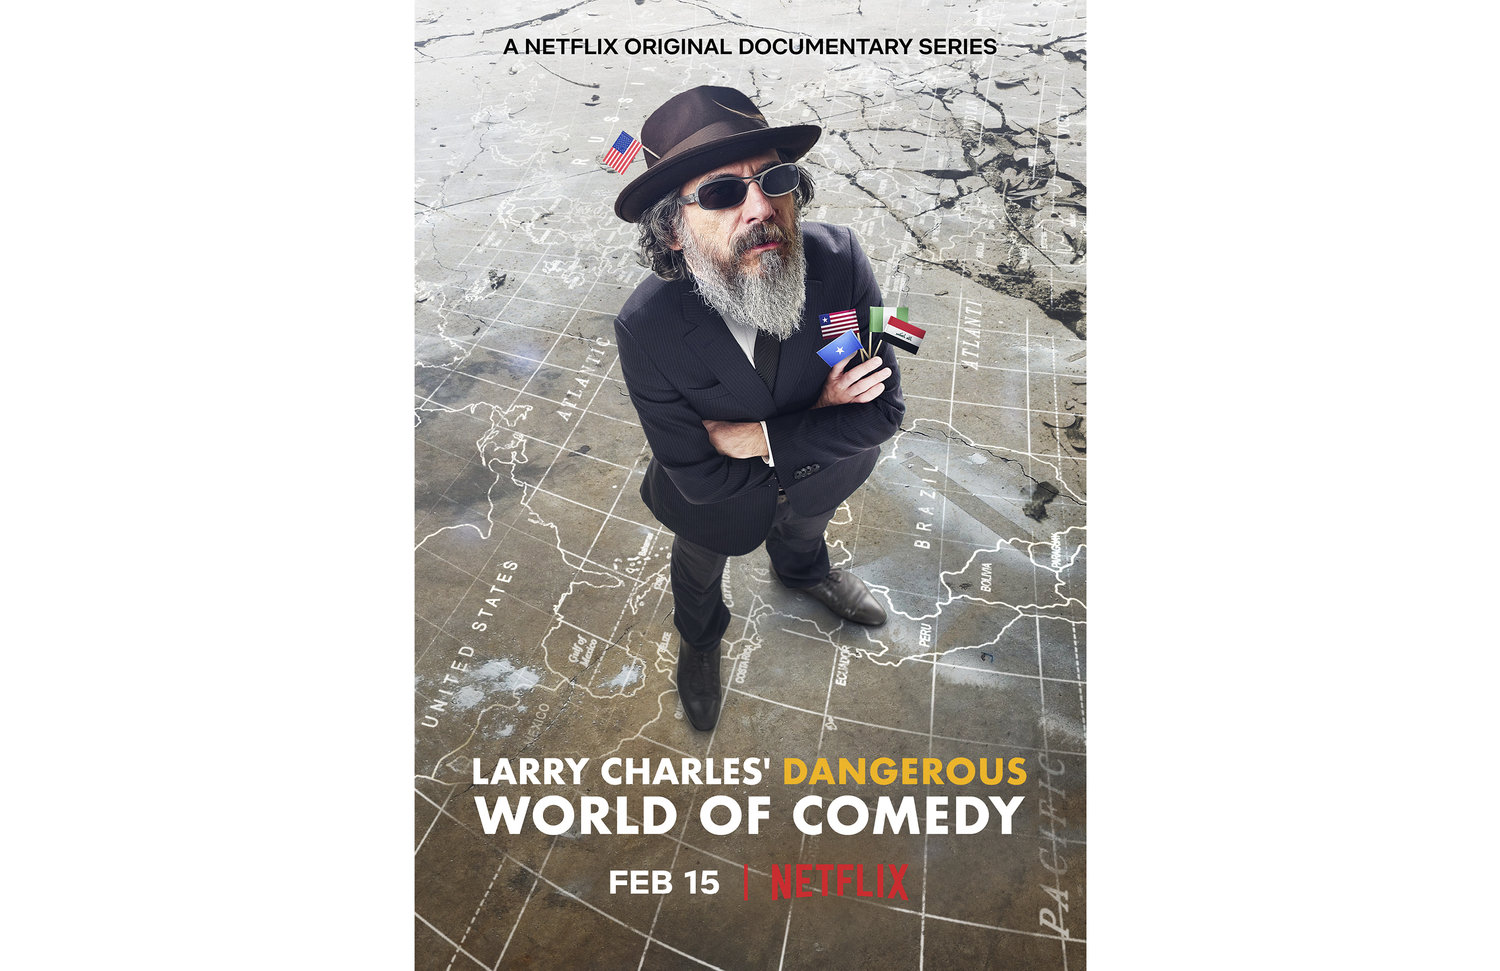 larry charles dangerous world of comedy trailer